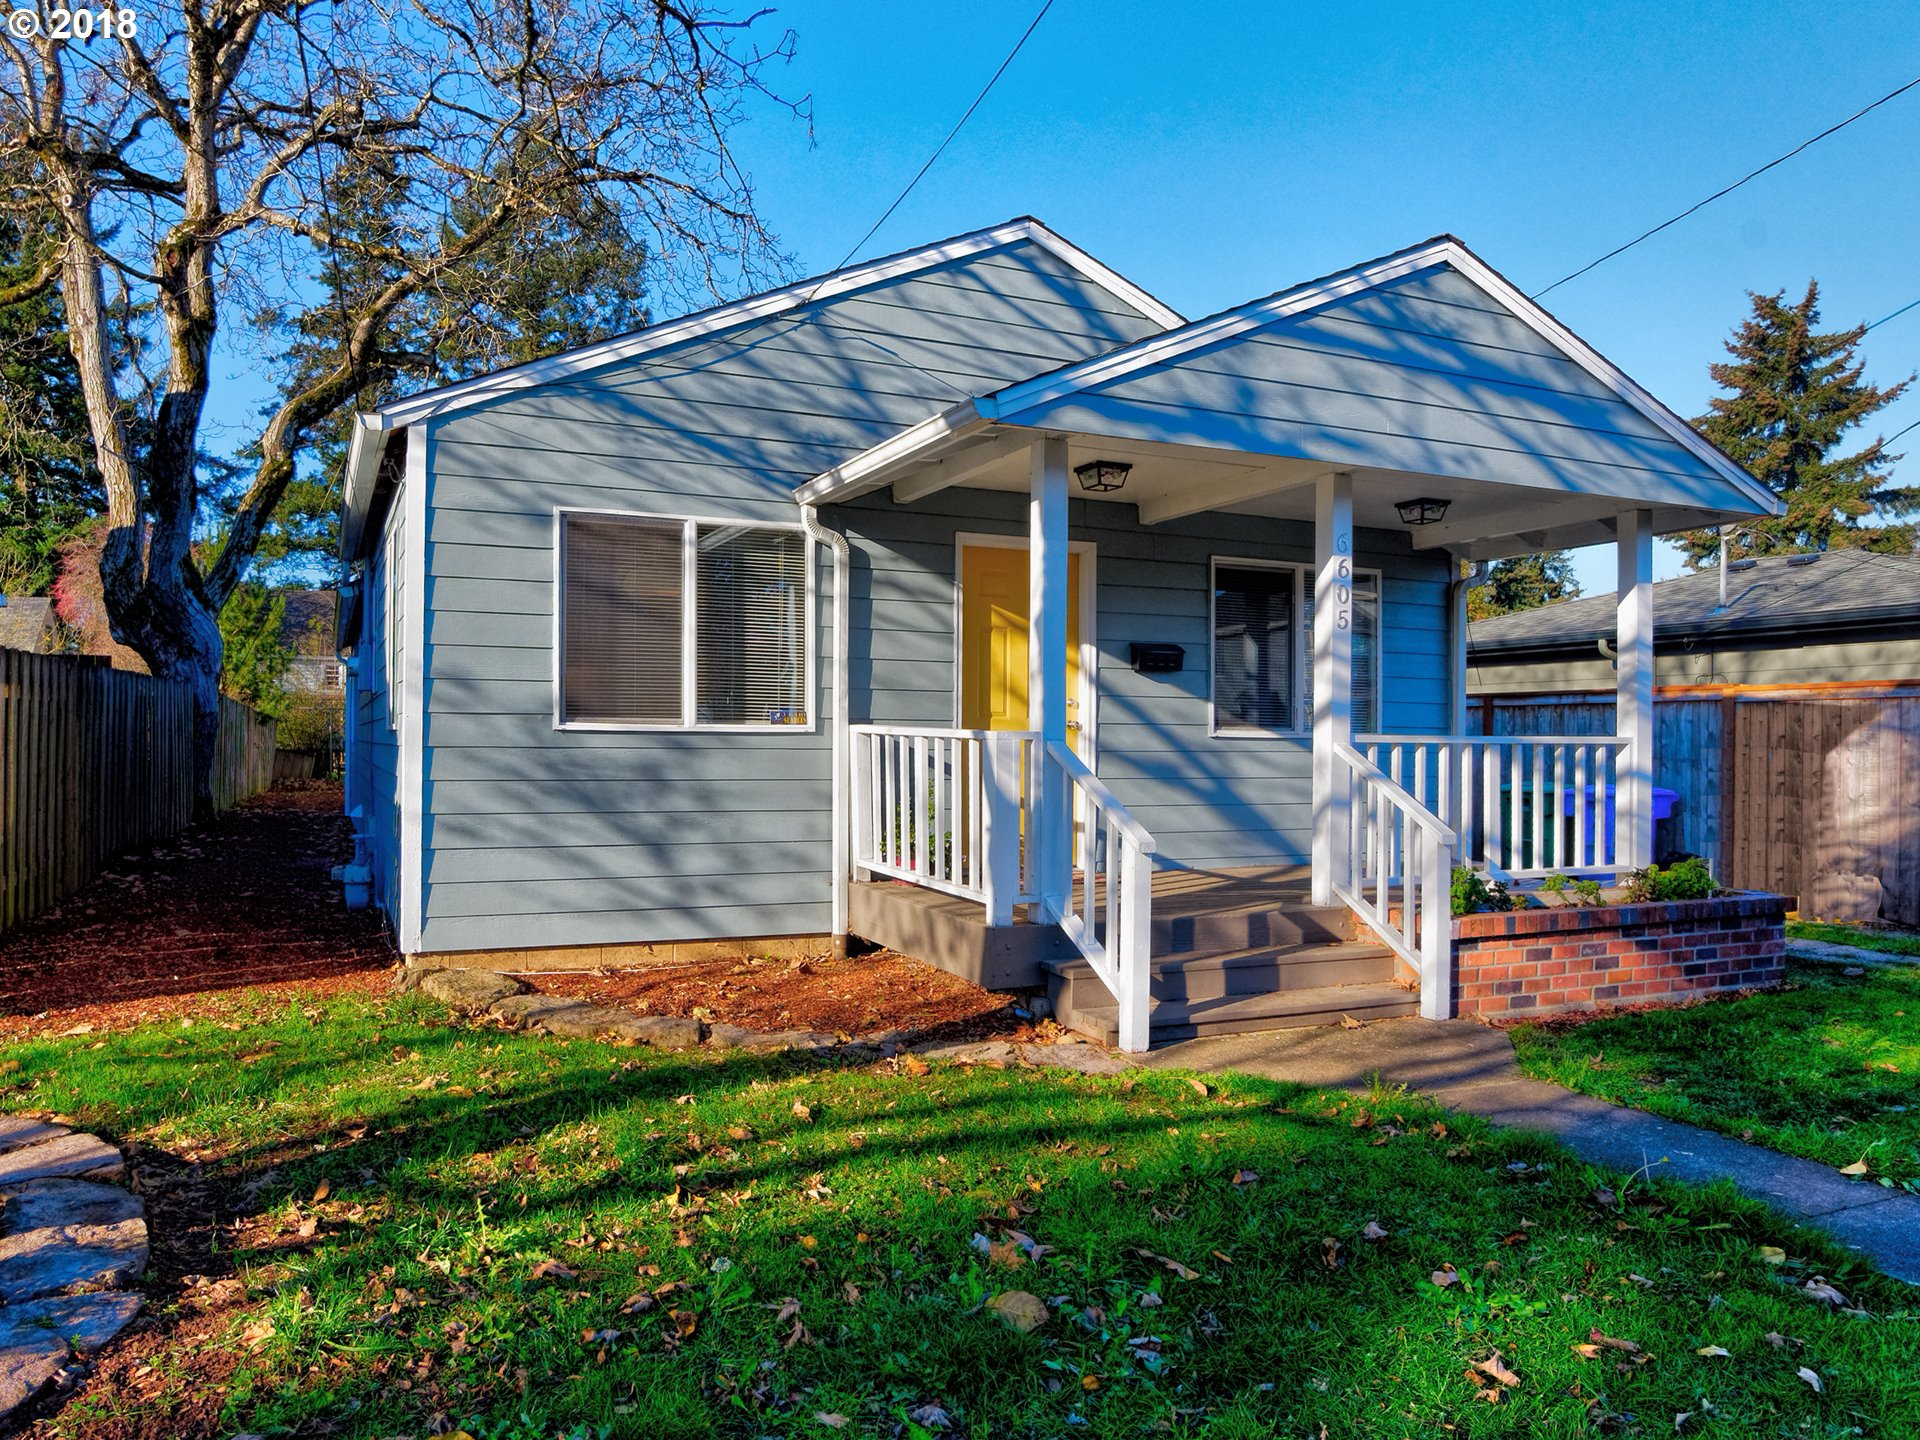 Photo for 6605 SE 69TH AVE, Portland, OR 97206 (MLS # 18200804)